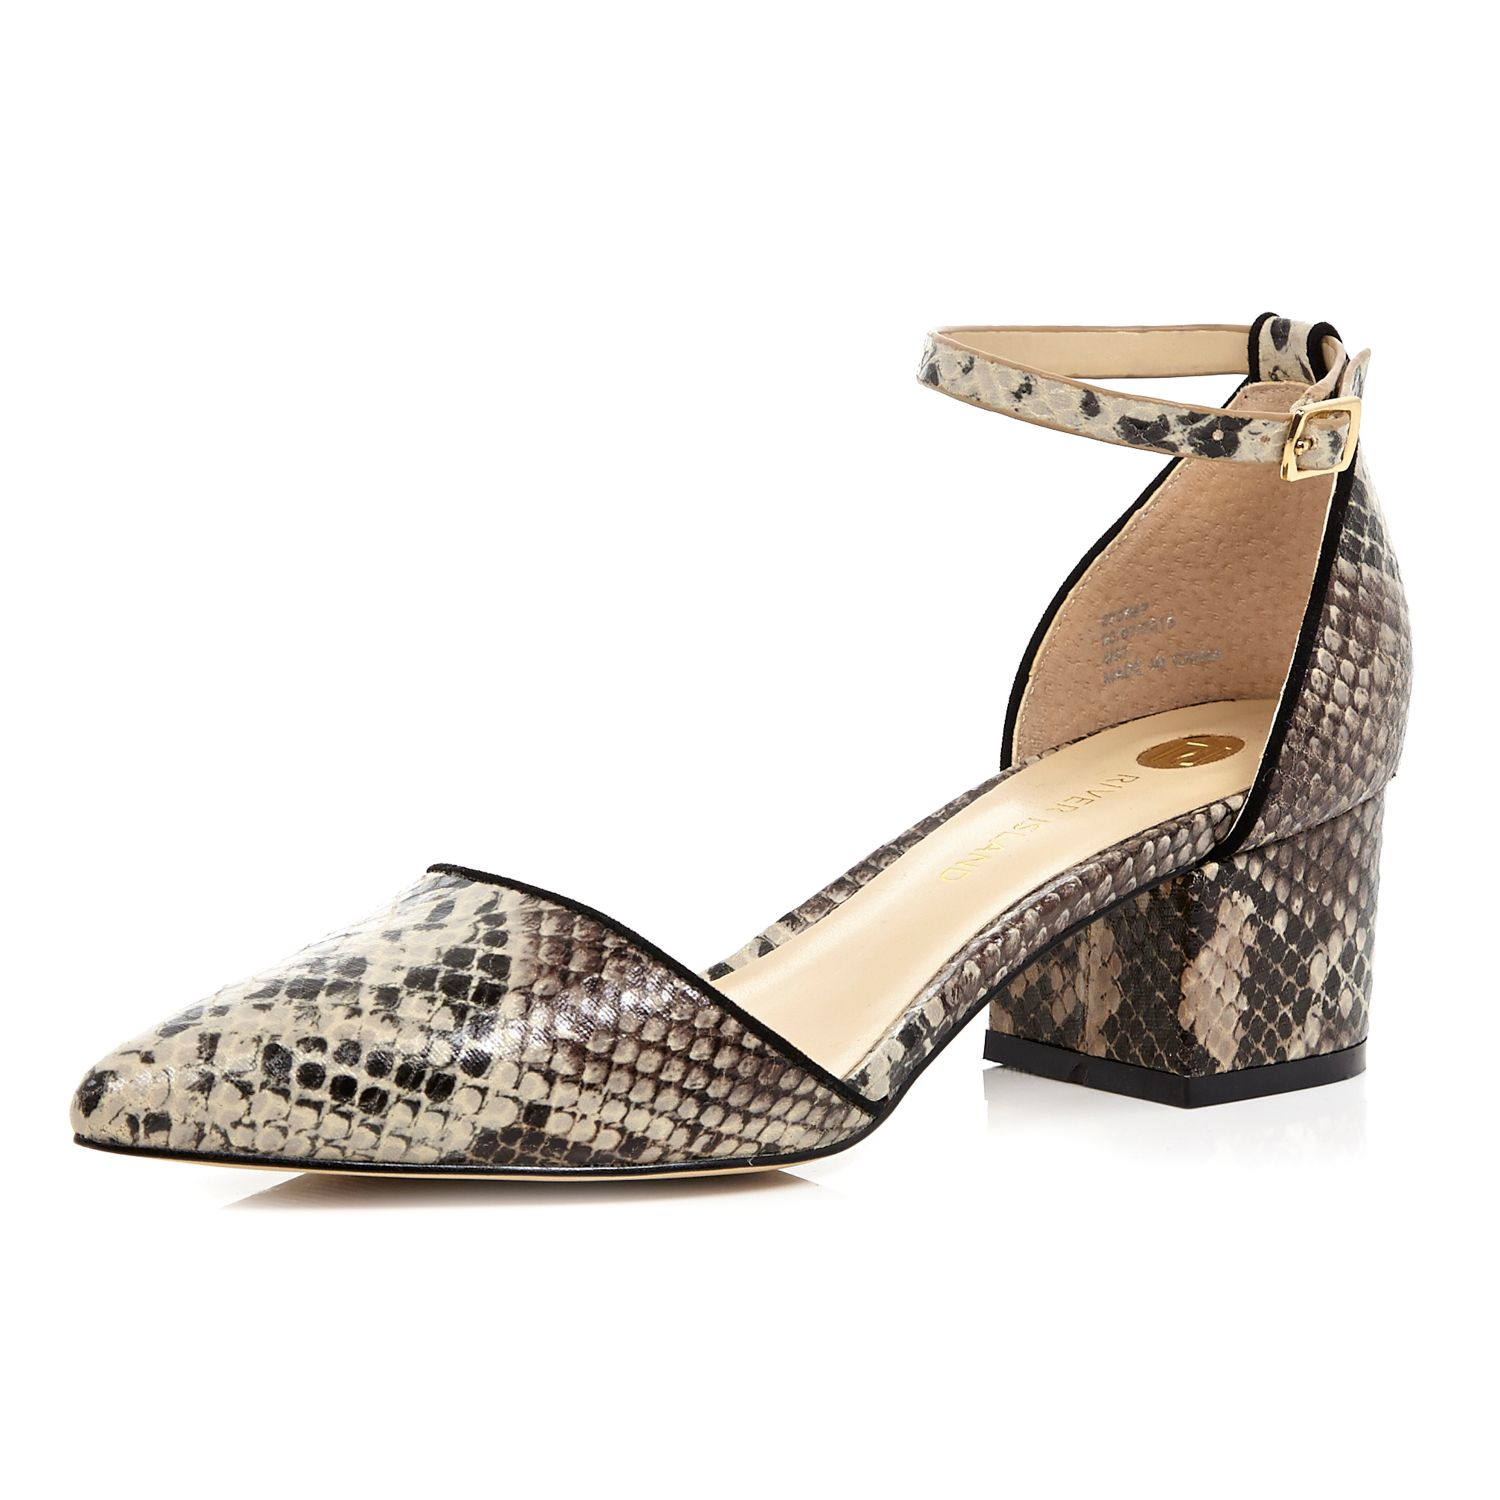 6ab734f2a7bc8d River island beige snake print block heel shoes in natural lyst jpg  1500x1500 Snake print shoes